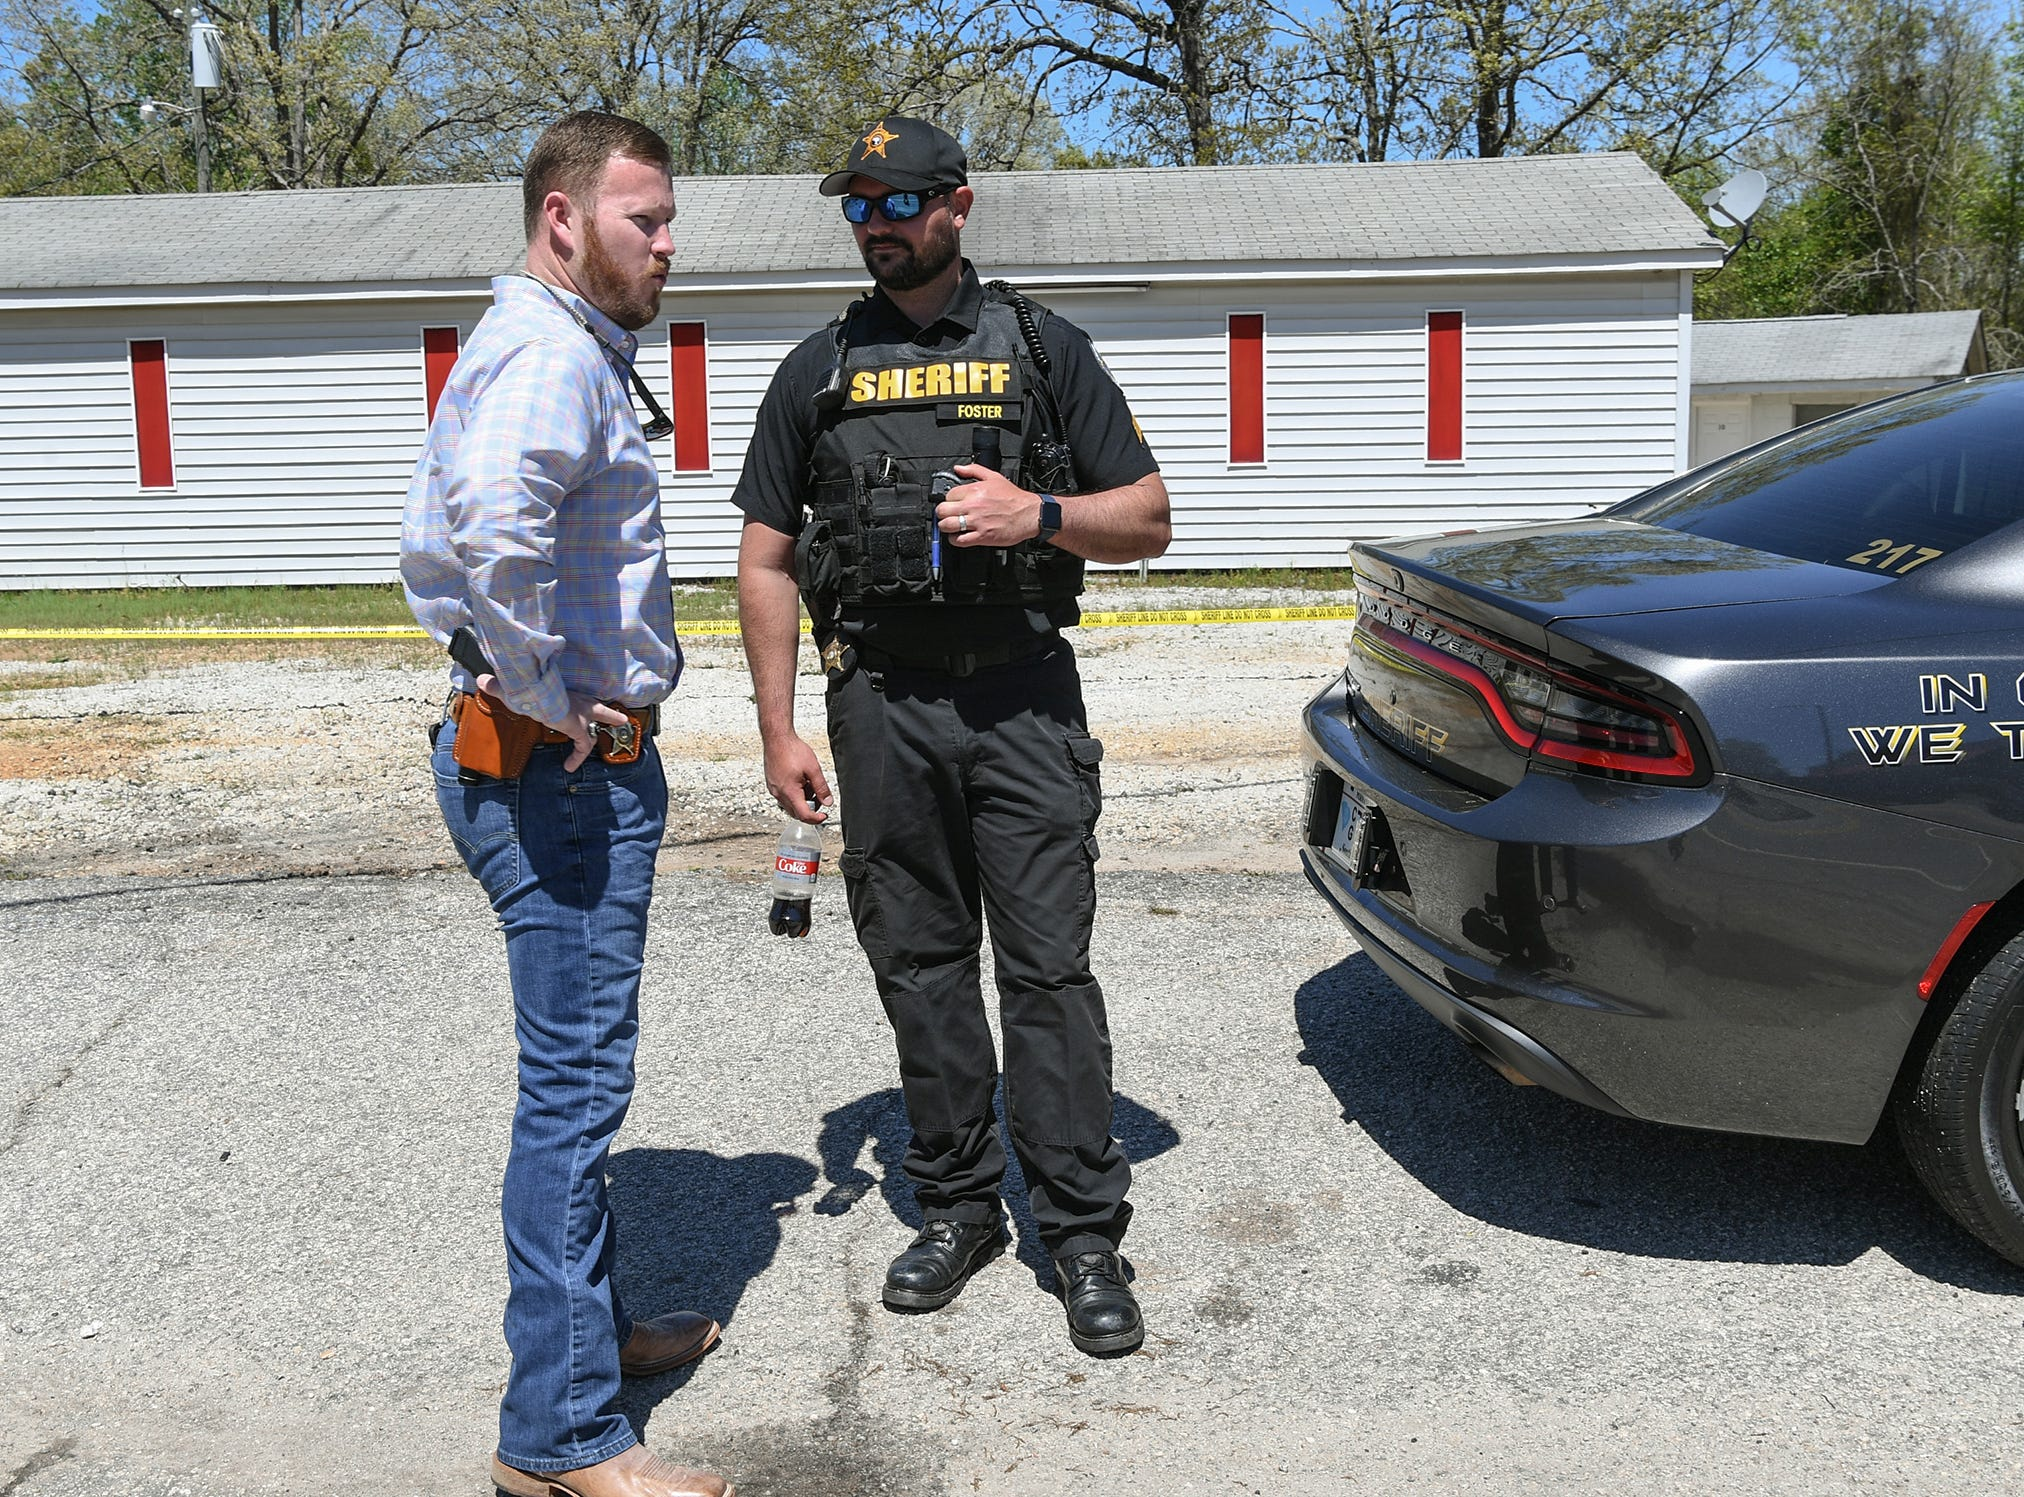 Anderson County Sheriff Chad McBride, left, and public information officer J.T. Foster at the scene of a shooting at Hilltop Motel on Hwy 29 where two people were reported shot and as many as seven were involved in a dispute Wednesday, April 10, 2019.